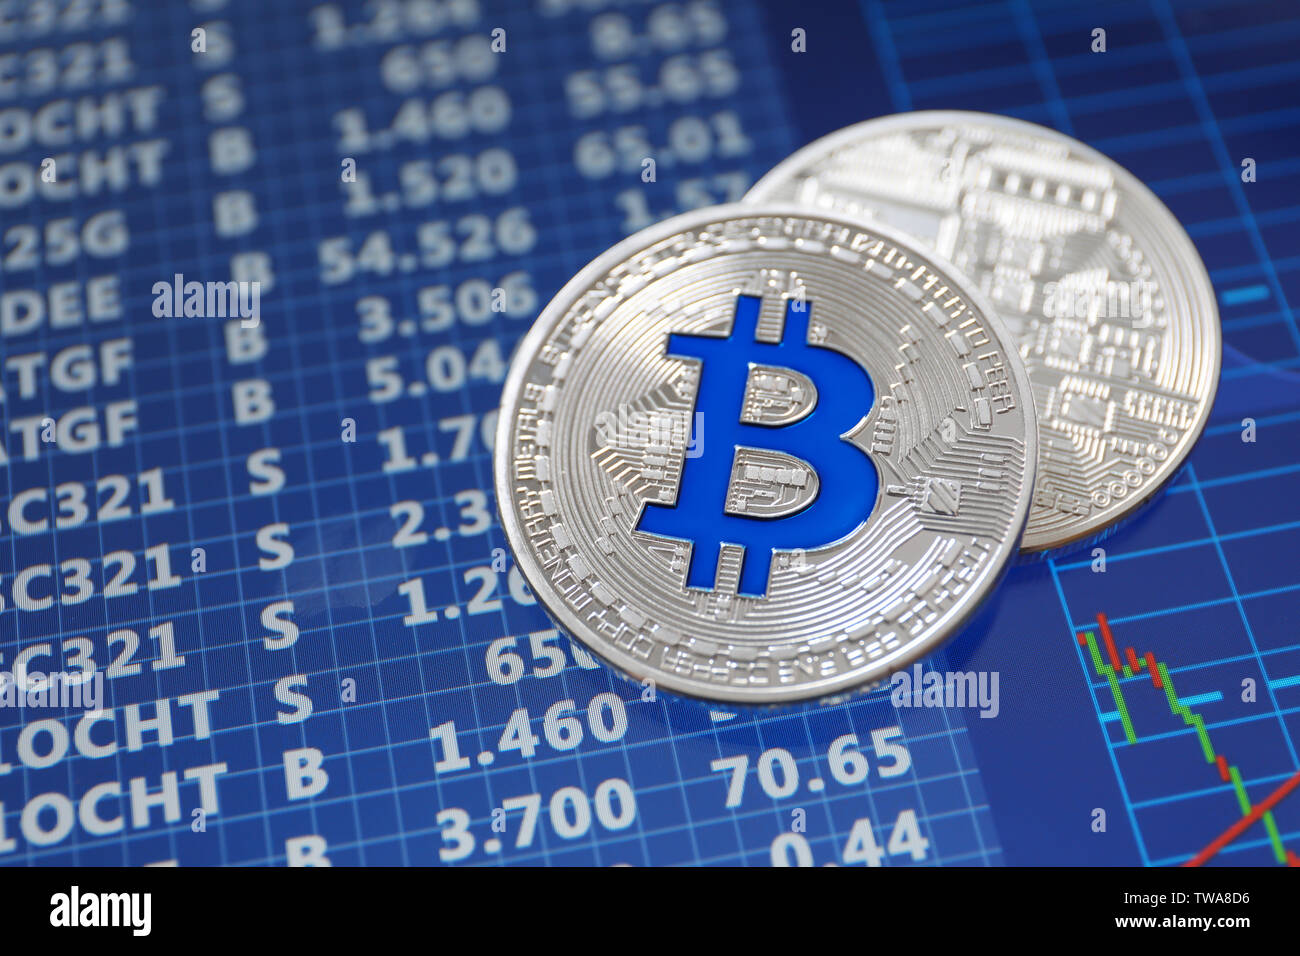 Silver bitcoins on screen with exchange rates. Finance trading - Stock Image